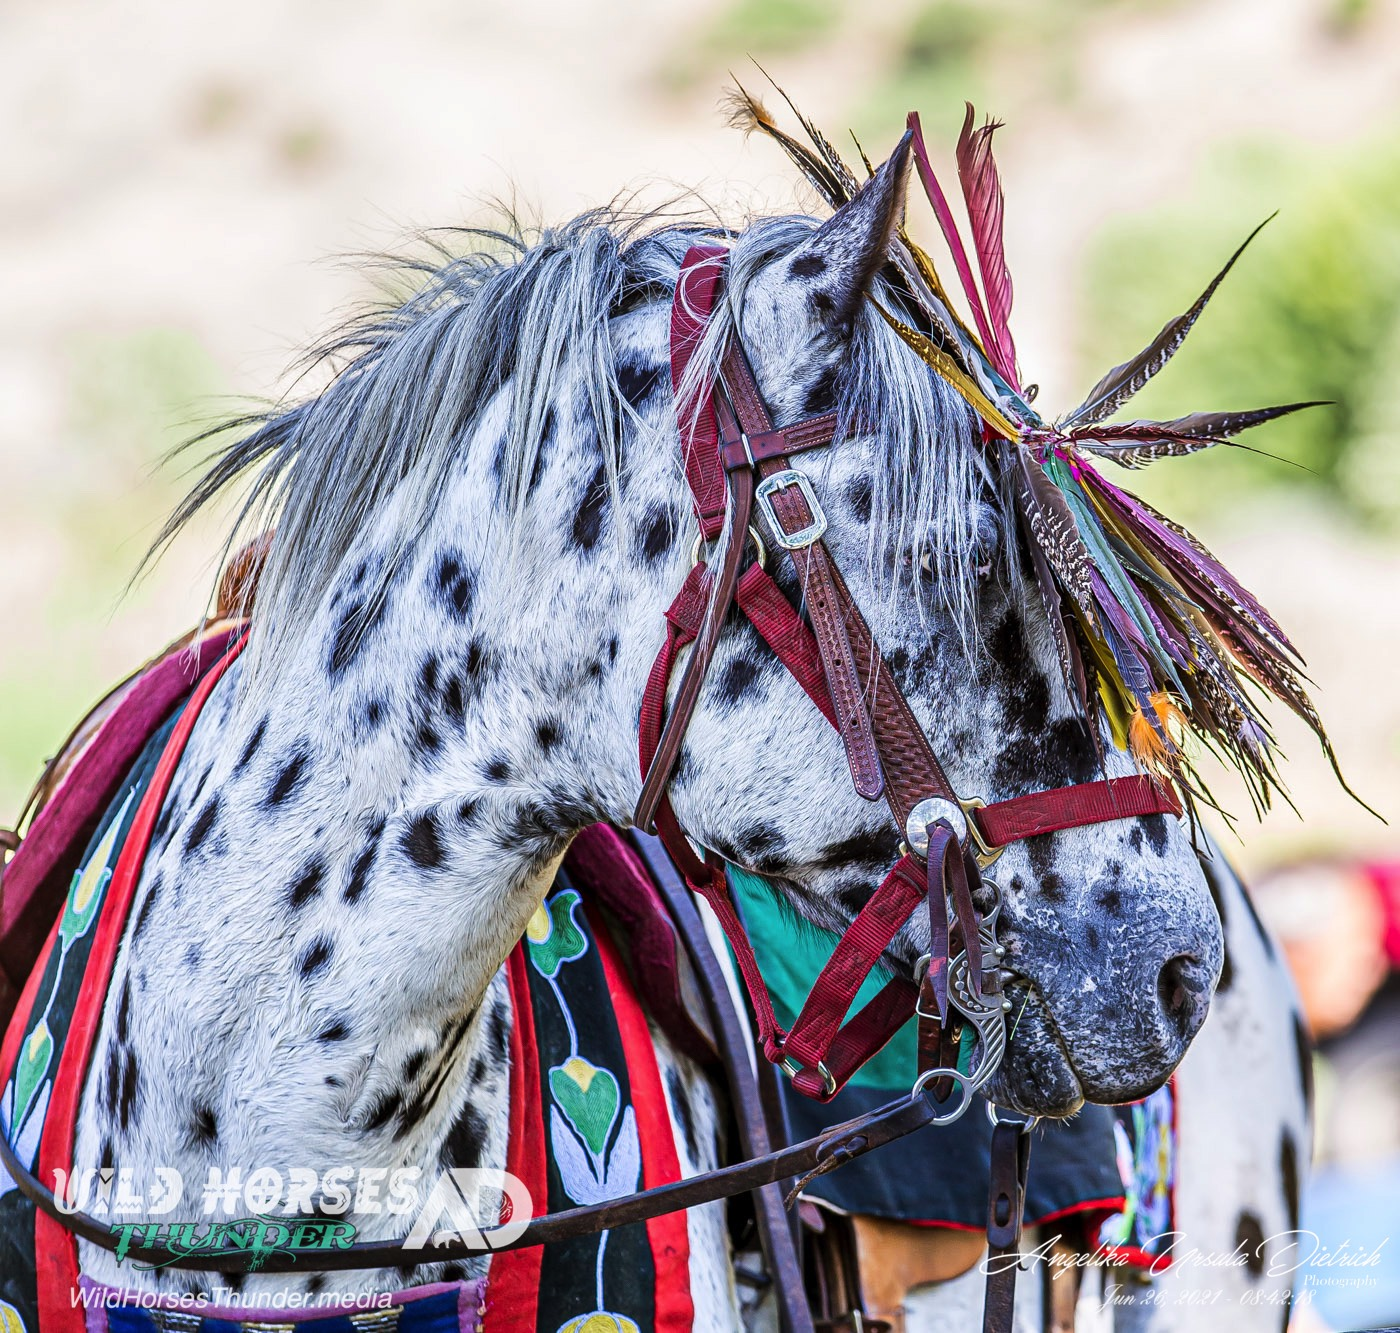 In 1994, the Nez Perce tribe in Idaho started a horse breeding program with the idea of crossbreeding Appaloosa horses with a Central Asian breed called Akhal-Teke to produce a new breed: The Nez Perce Horse.